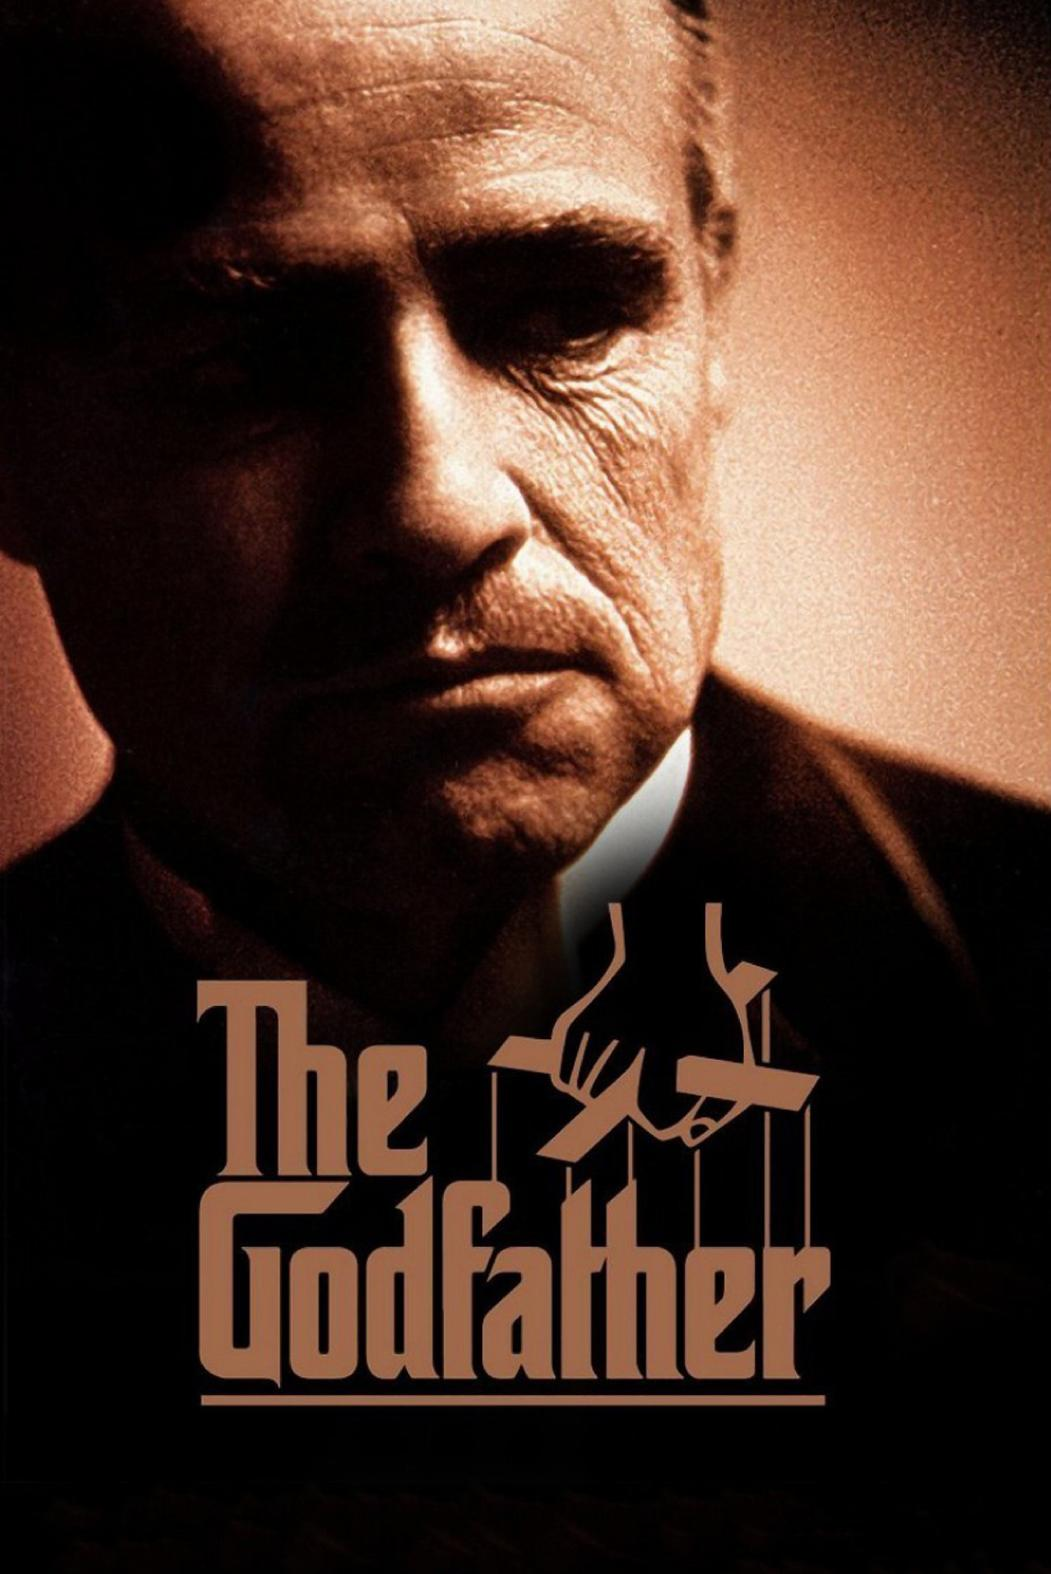 The Godfather 1972 Desktop Wallpaper  Moviemania